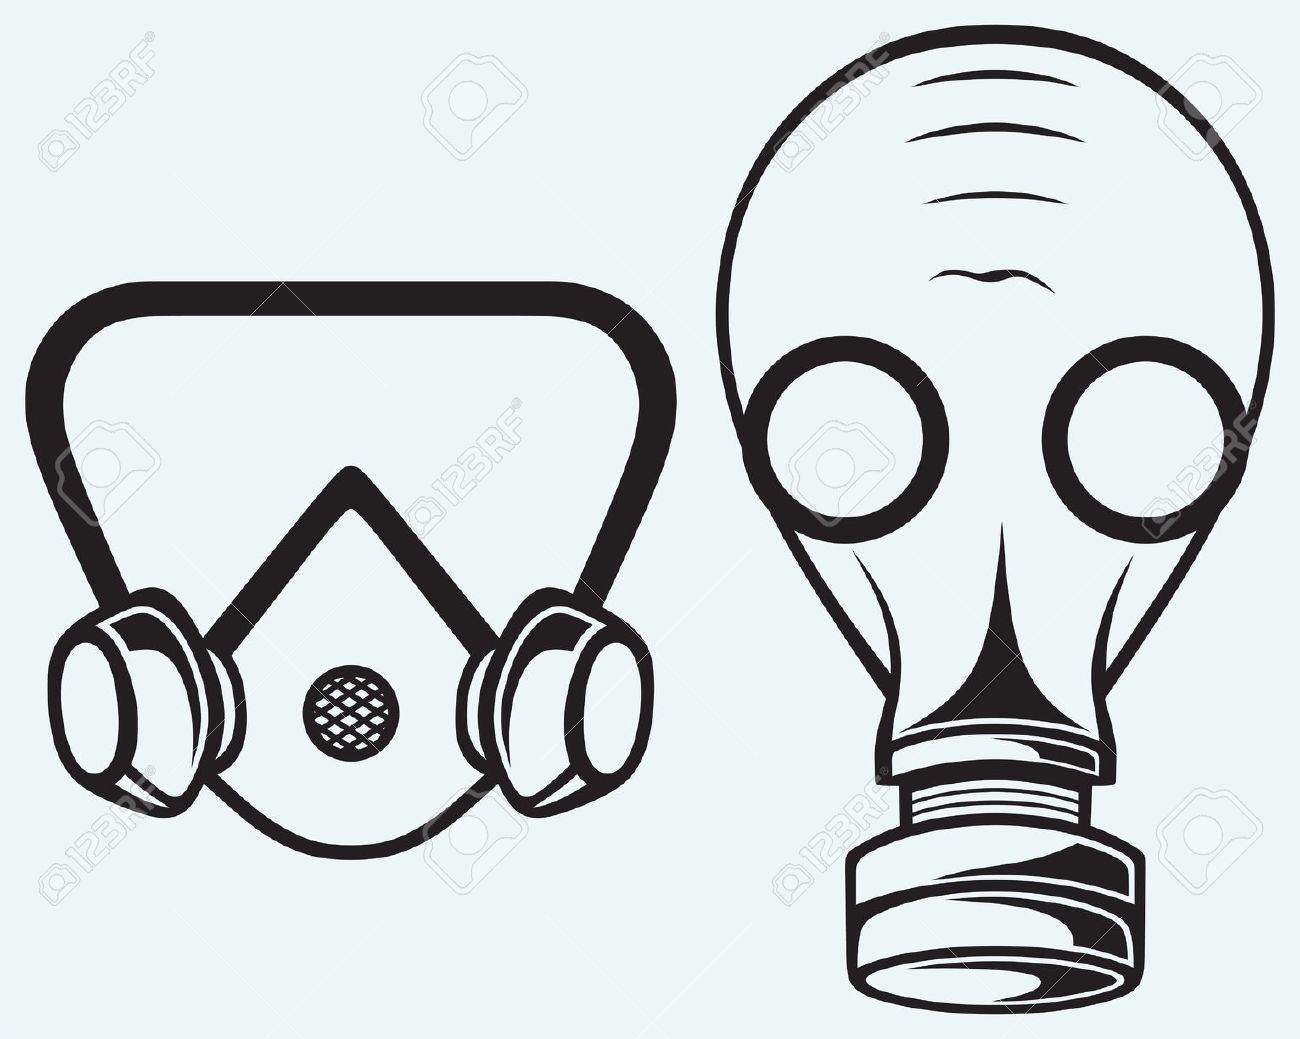 Gas Mask clipart #7, Download drawings